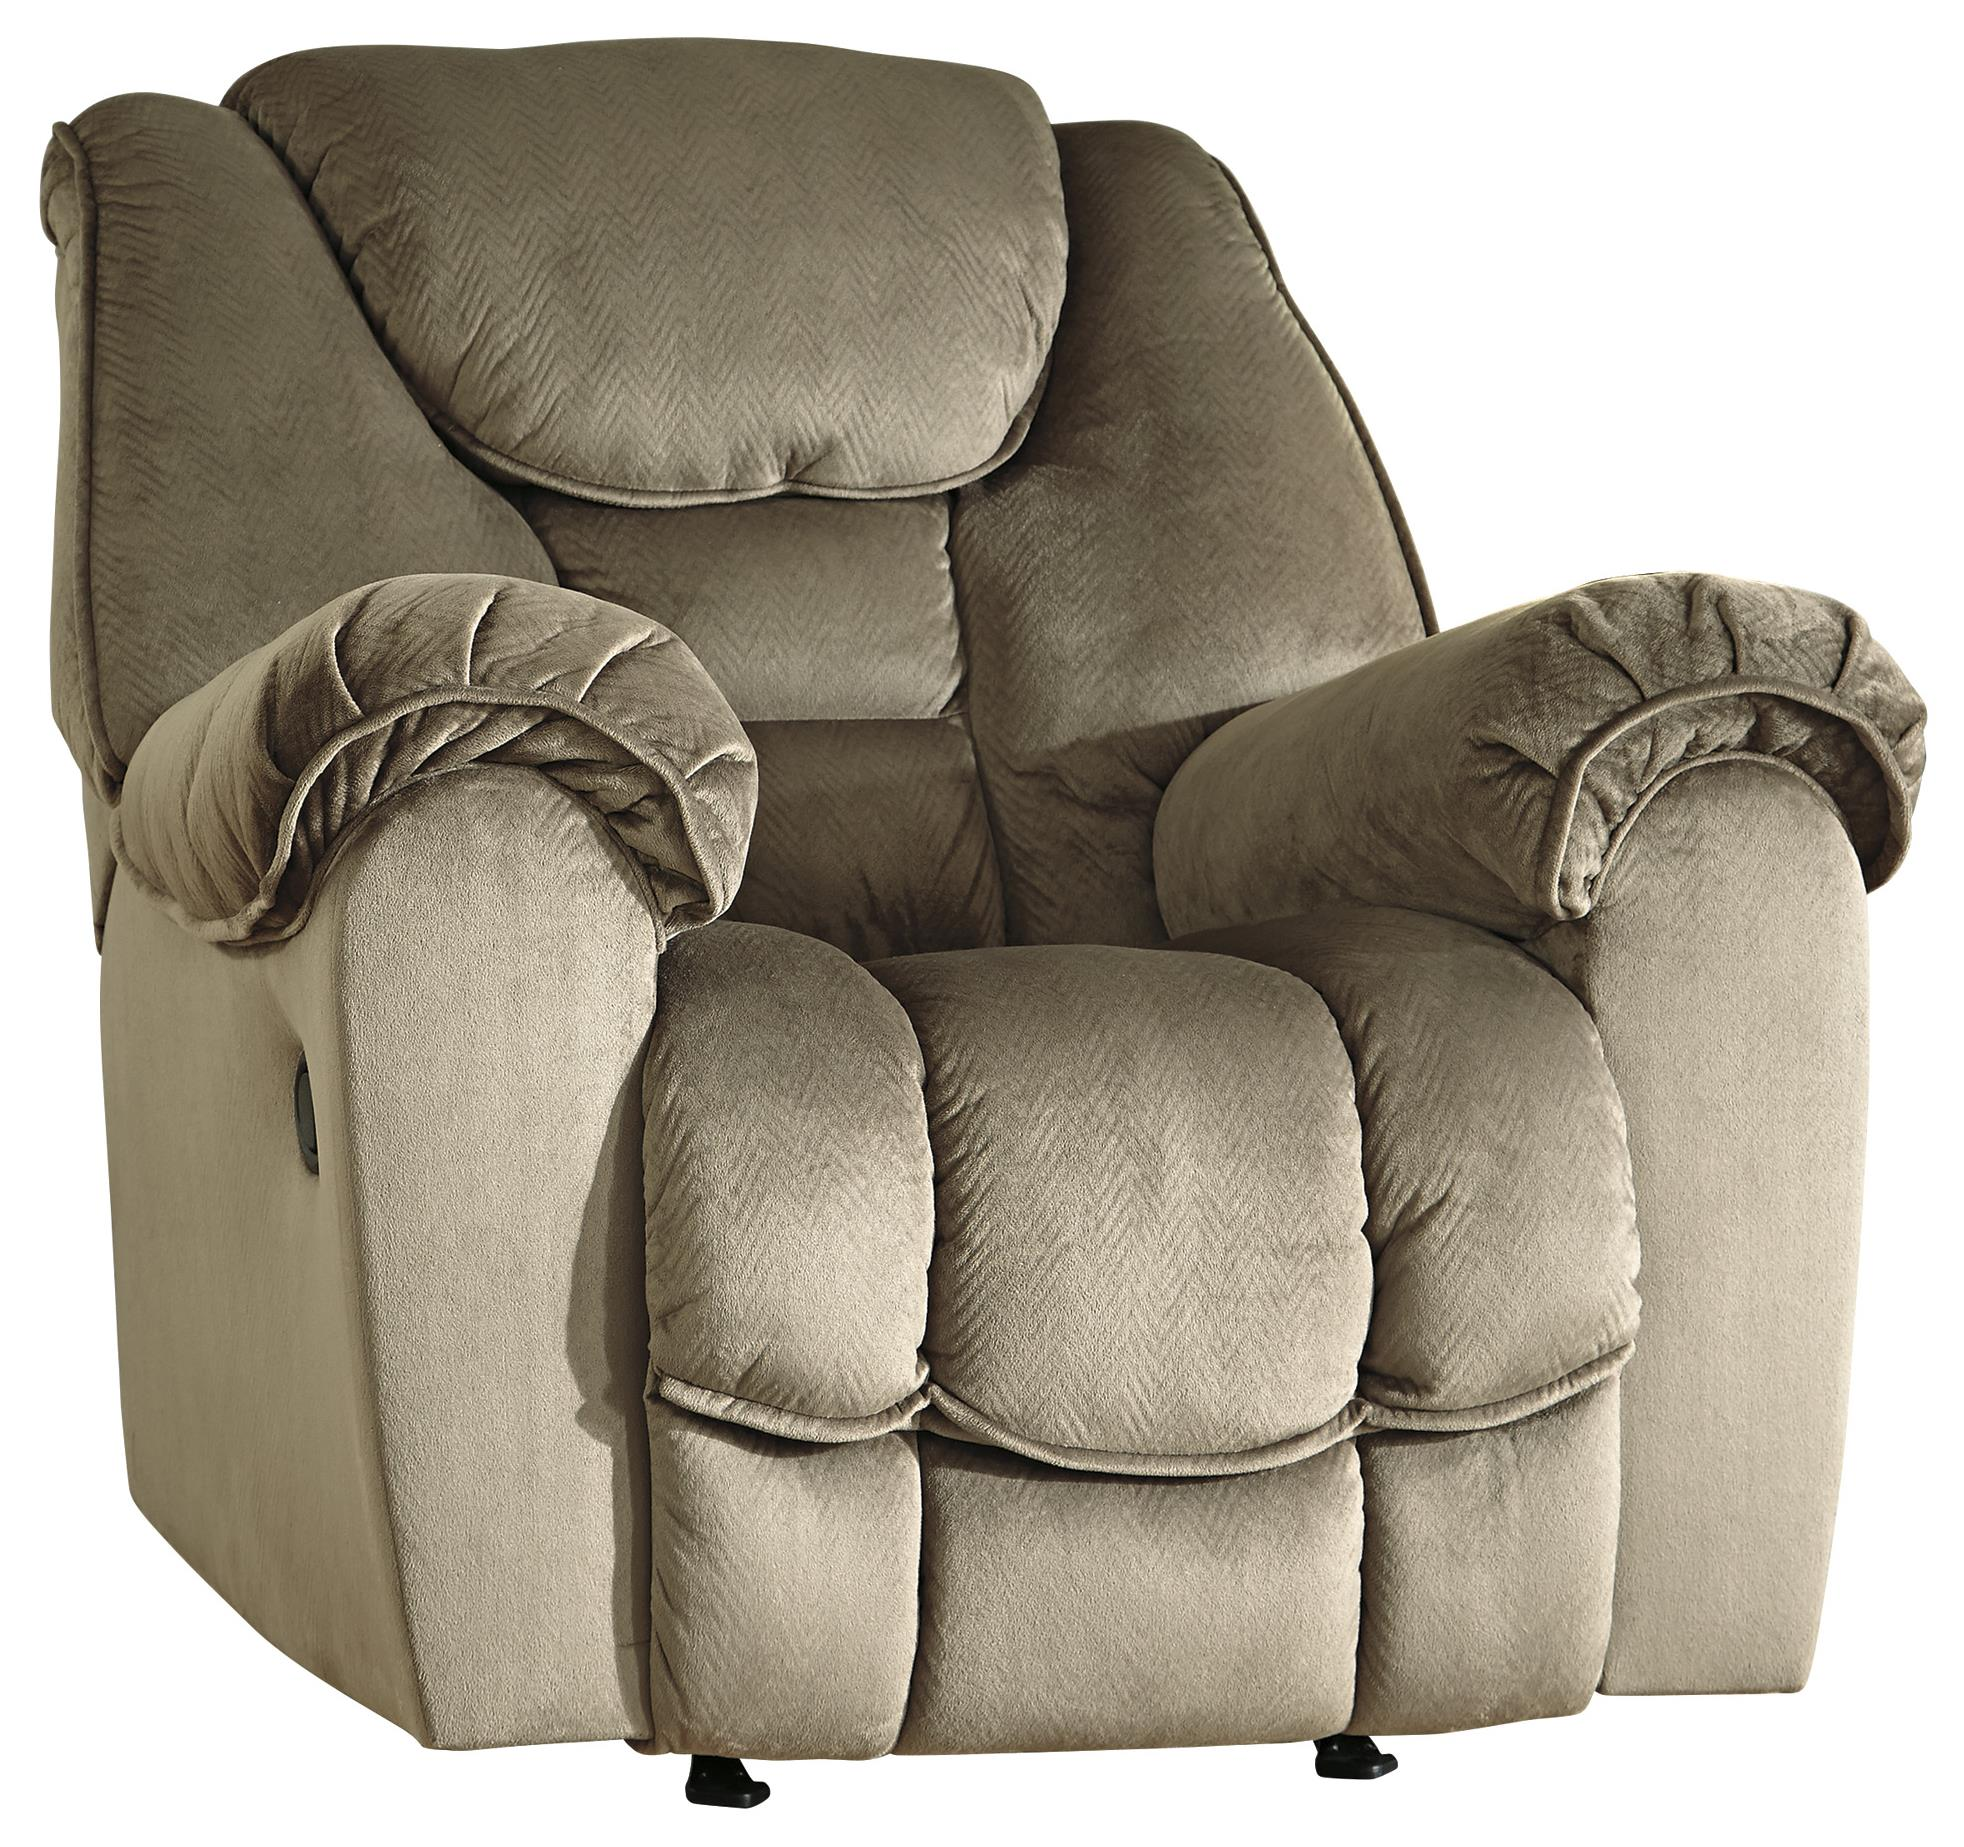 Benchcraft Jodoca Rocker Recliner - Item Number: 3660125